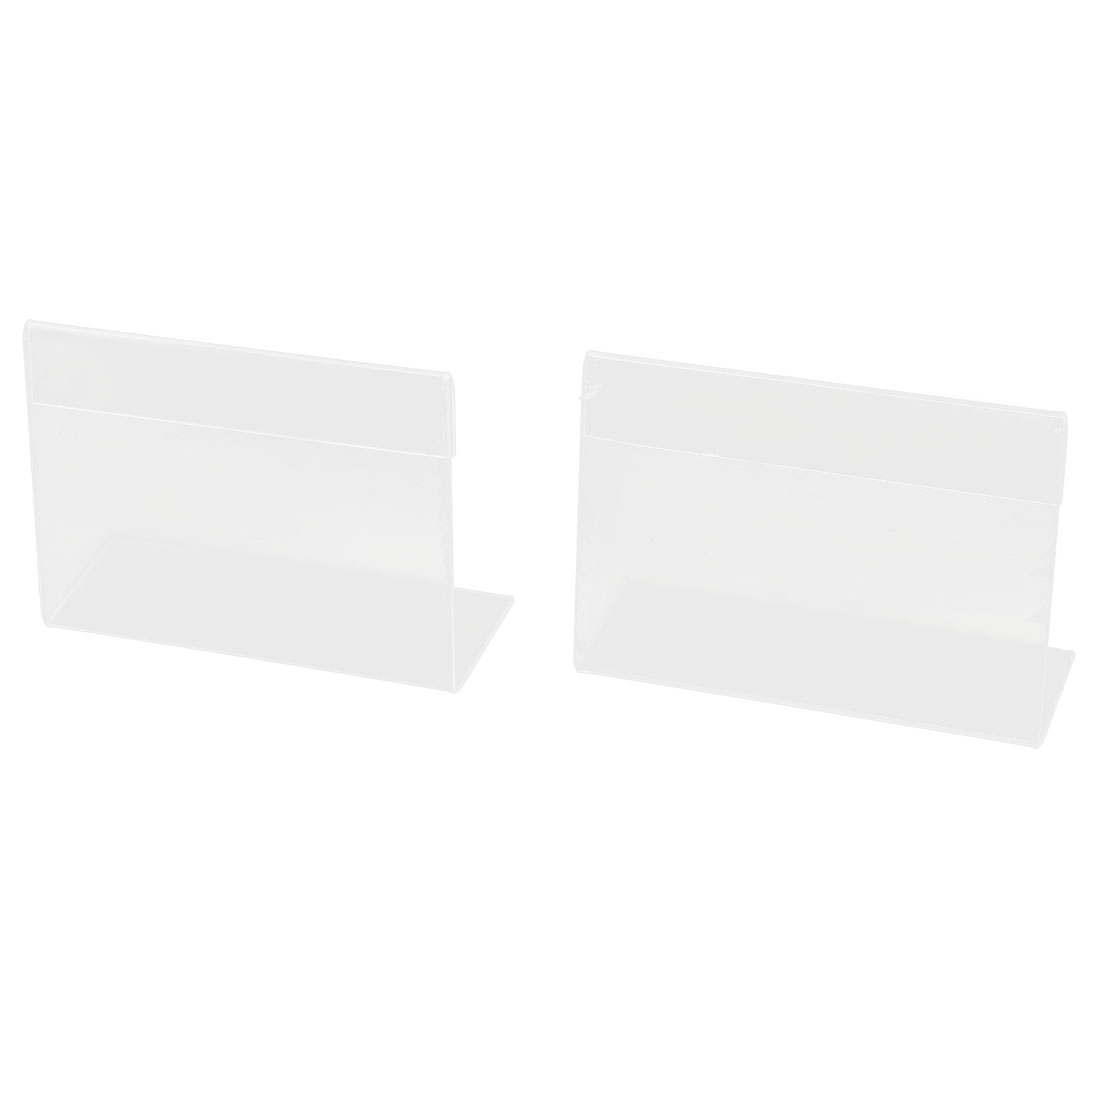 Desk Shelf Clear Plastic Business Card Holder Display Stand 2pcs